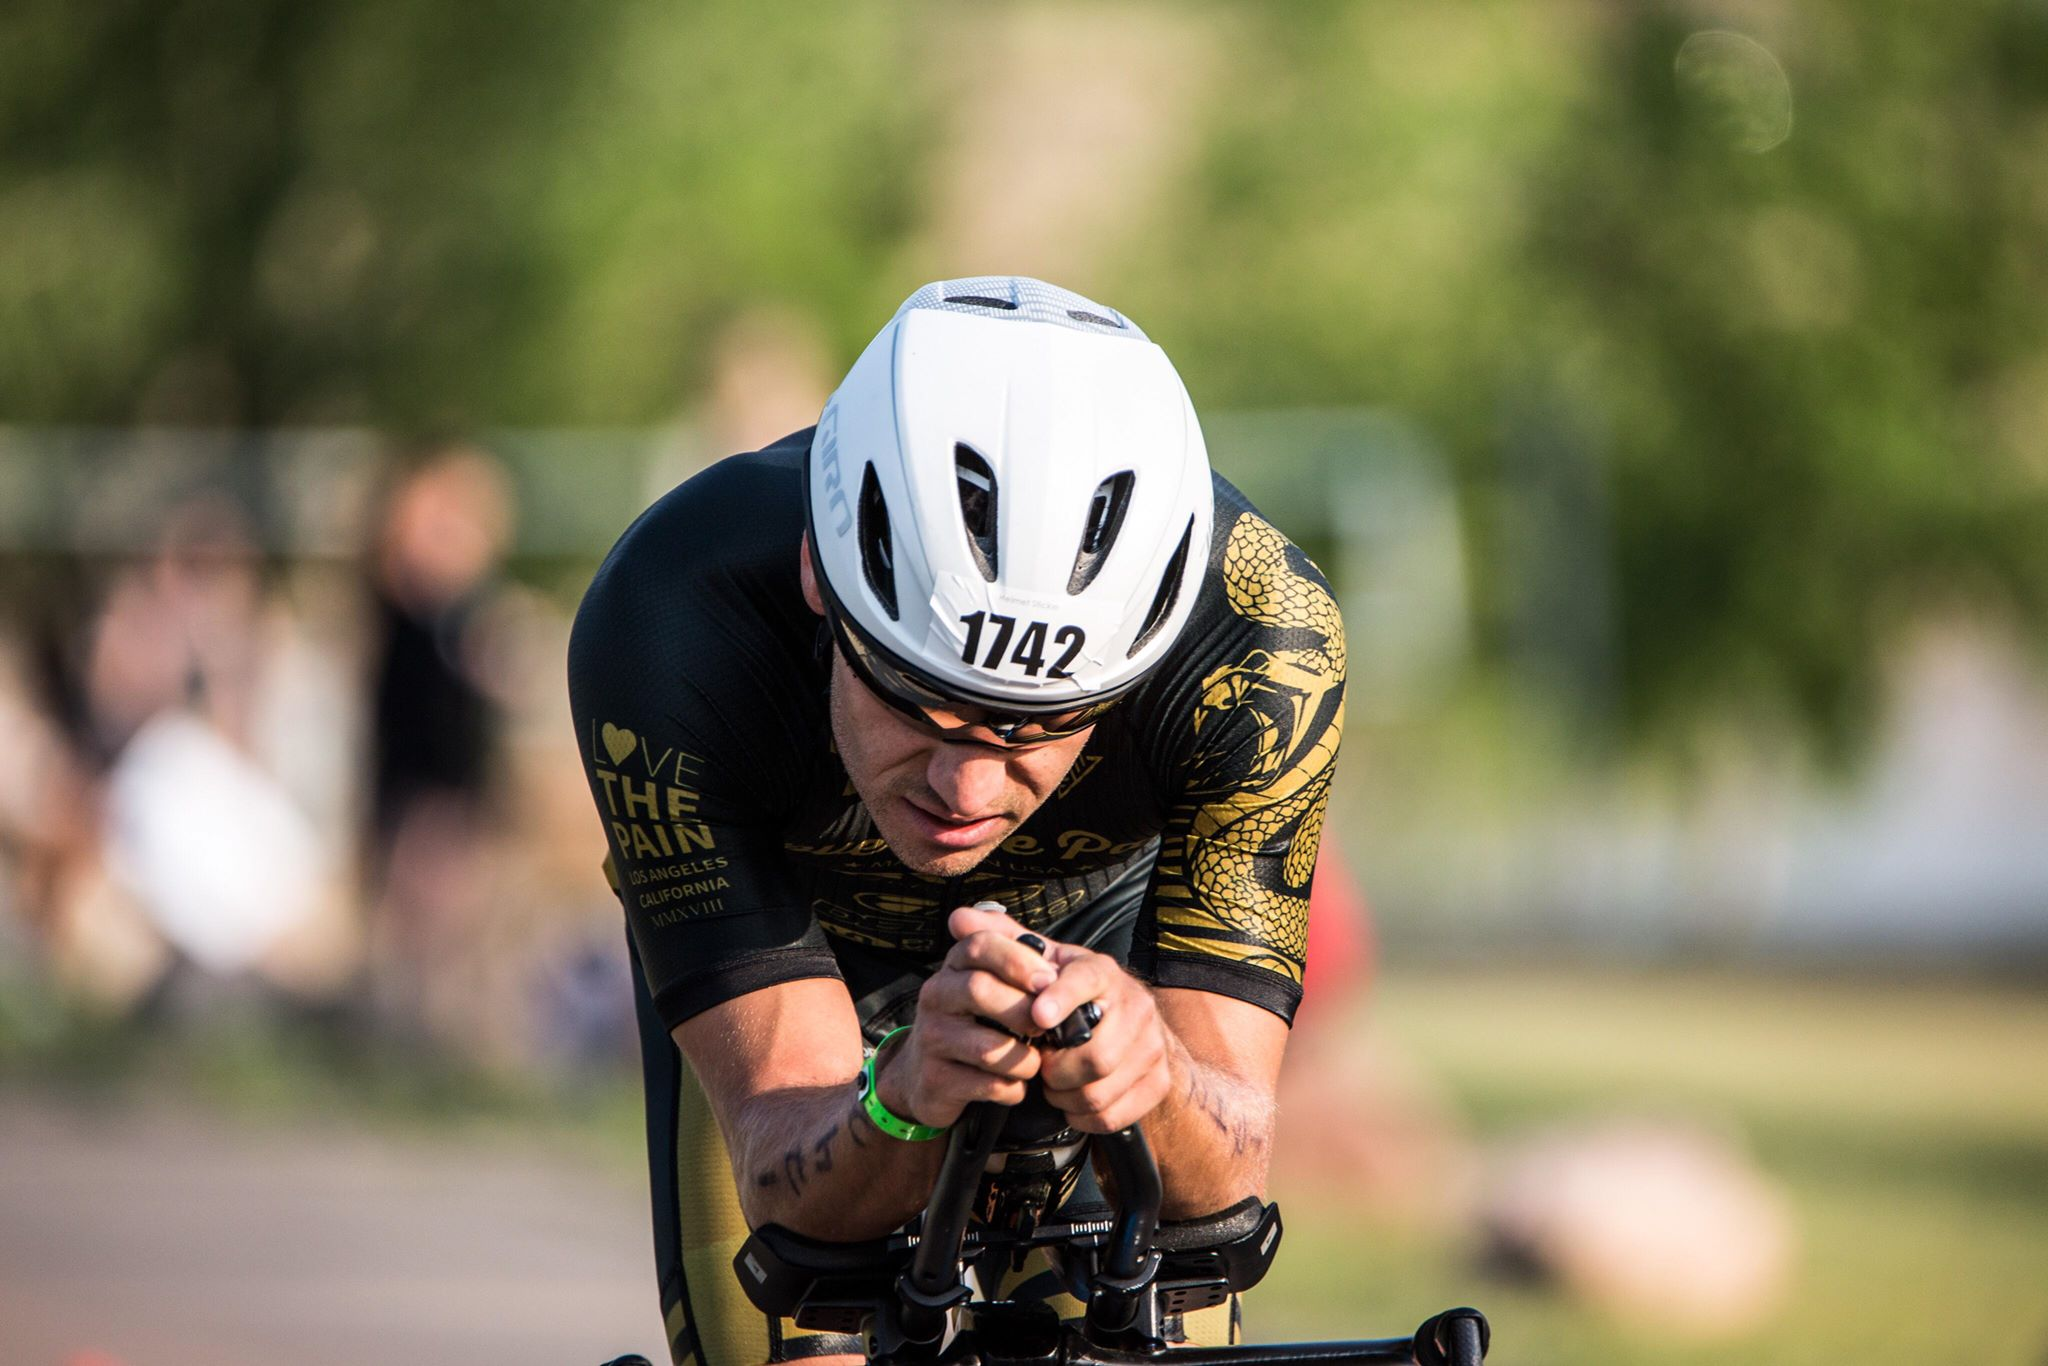 Coach_Terry_Wilson_Pursuit_of_The_Perfect_Race_IRONMAN_Troy_Team_Sirius_Boulder_Kona_Slot_3_Hammering.jpg